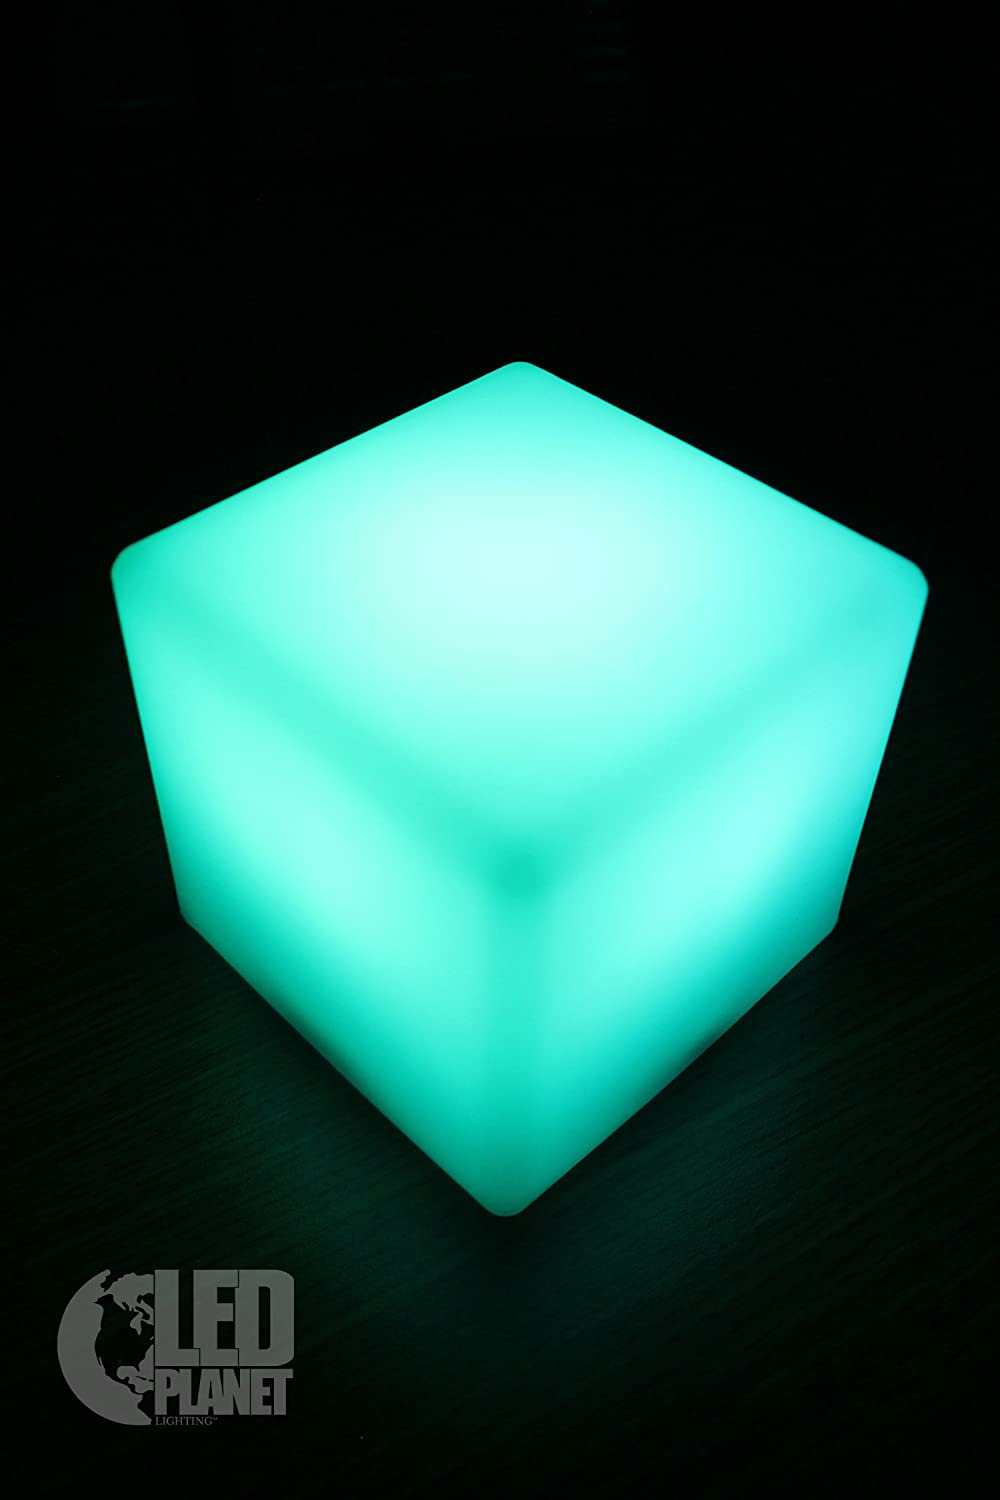 Com buy 10cm cube decorative battery operated rgb led table lamps - Led Light Cube 4 Inches Night Light Lamp Bar Restaurant Table Lamp Led Household Light Bulbs Amazon Com